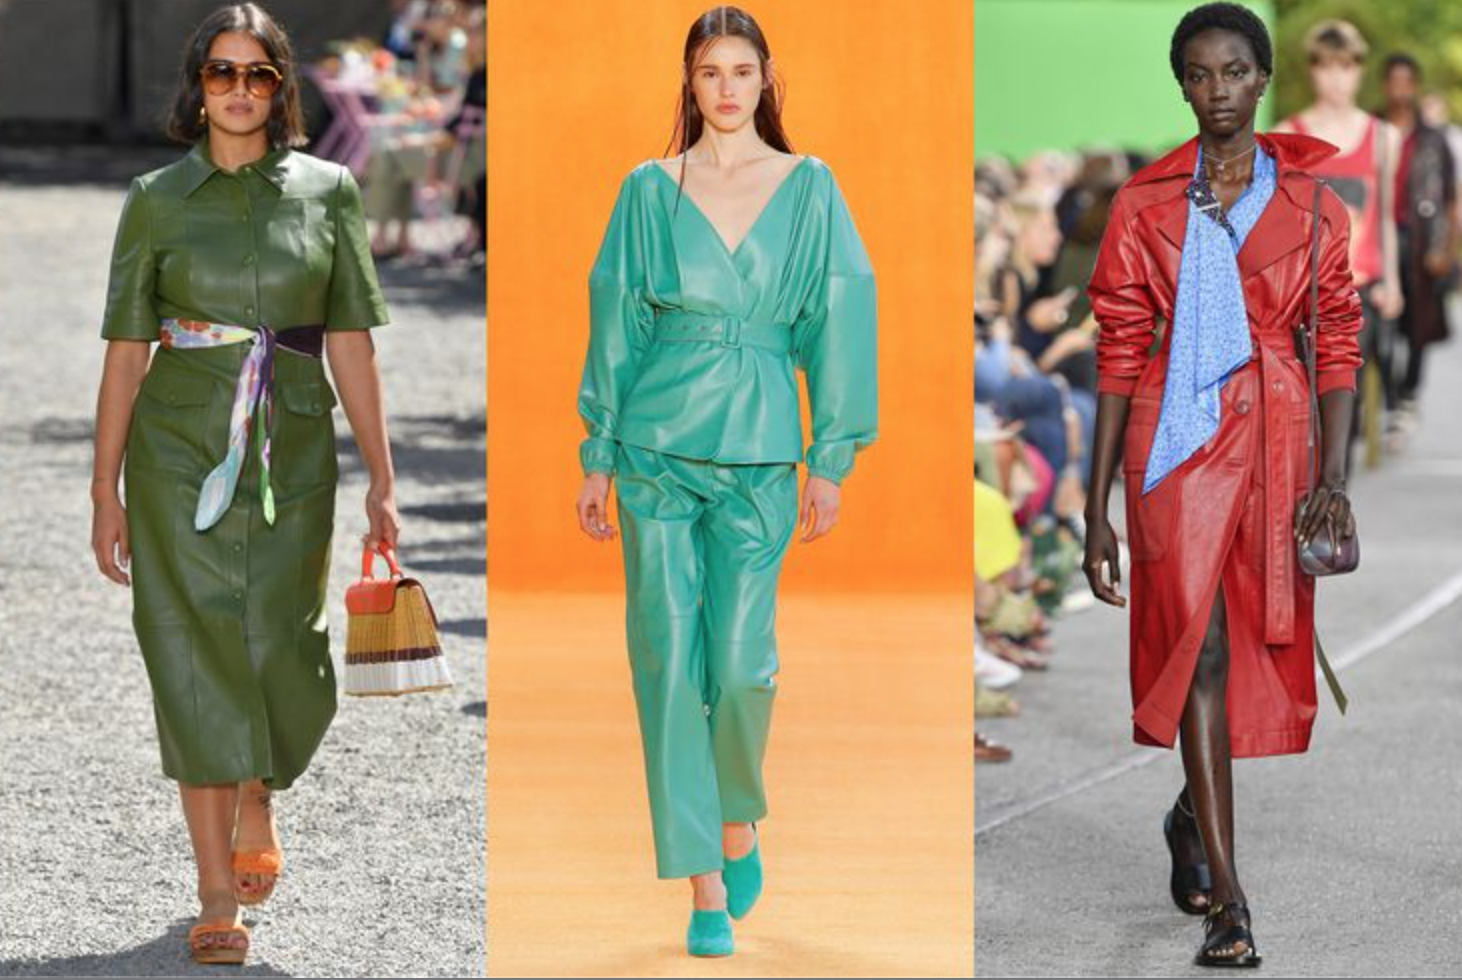 spring leather 2020 TRENDS from supplechic a fashion and life style blog based out of baltimore